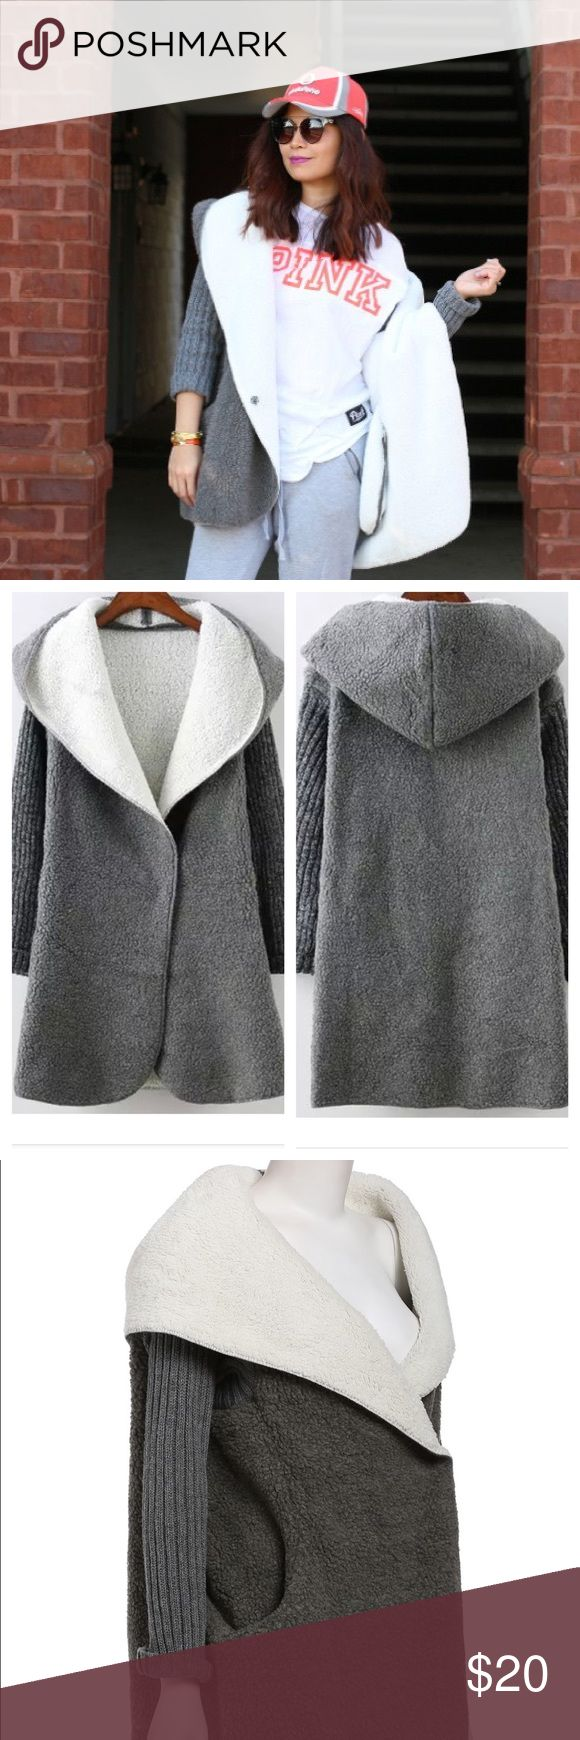 Gray hooded long sweater coat The comfiest and coziest sweater coat. Material is super soft and comfy. Oversized fit with oversized hoodie. Inner is white. Huge pockets on sides. Ribbed sleeves. Will fit small to medium Jackets & Coats